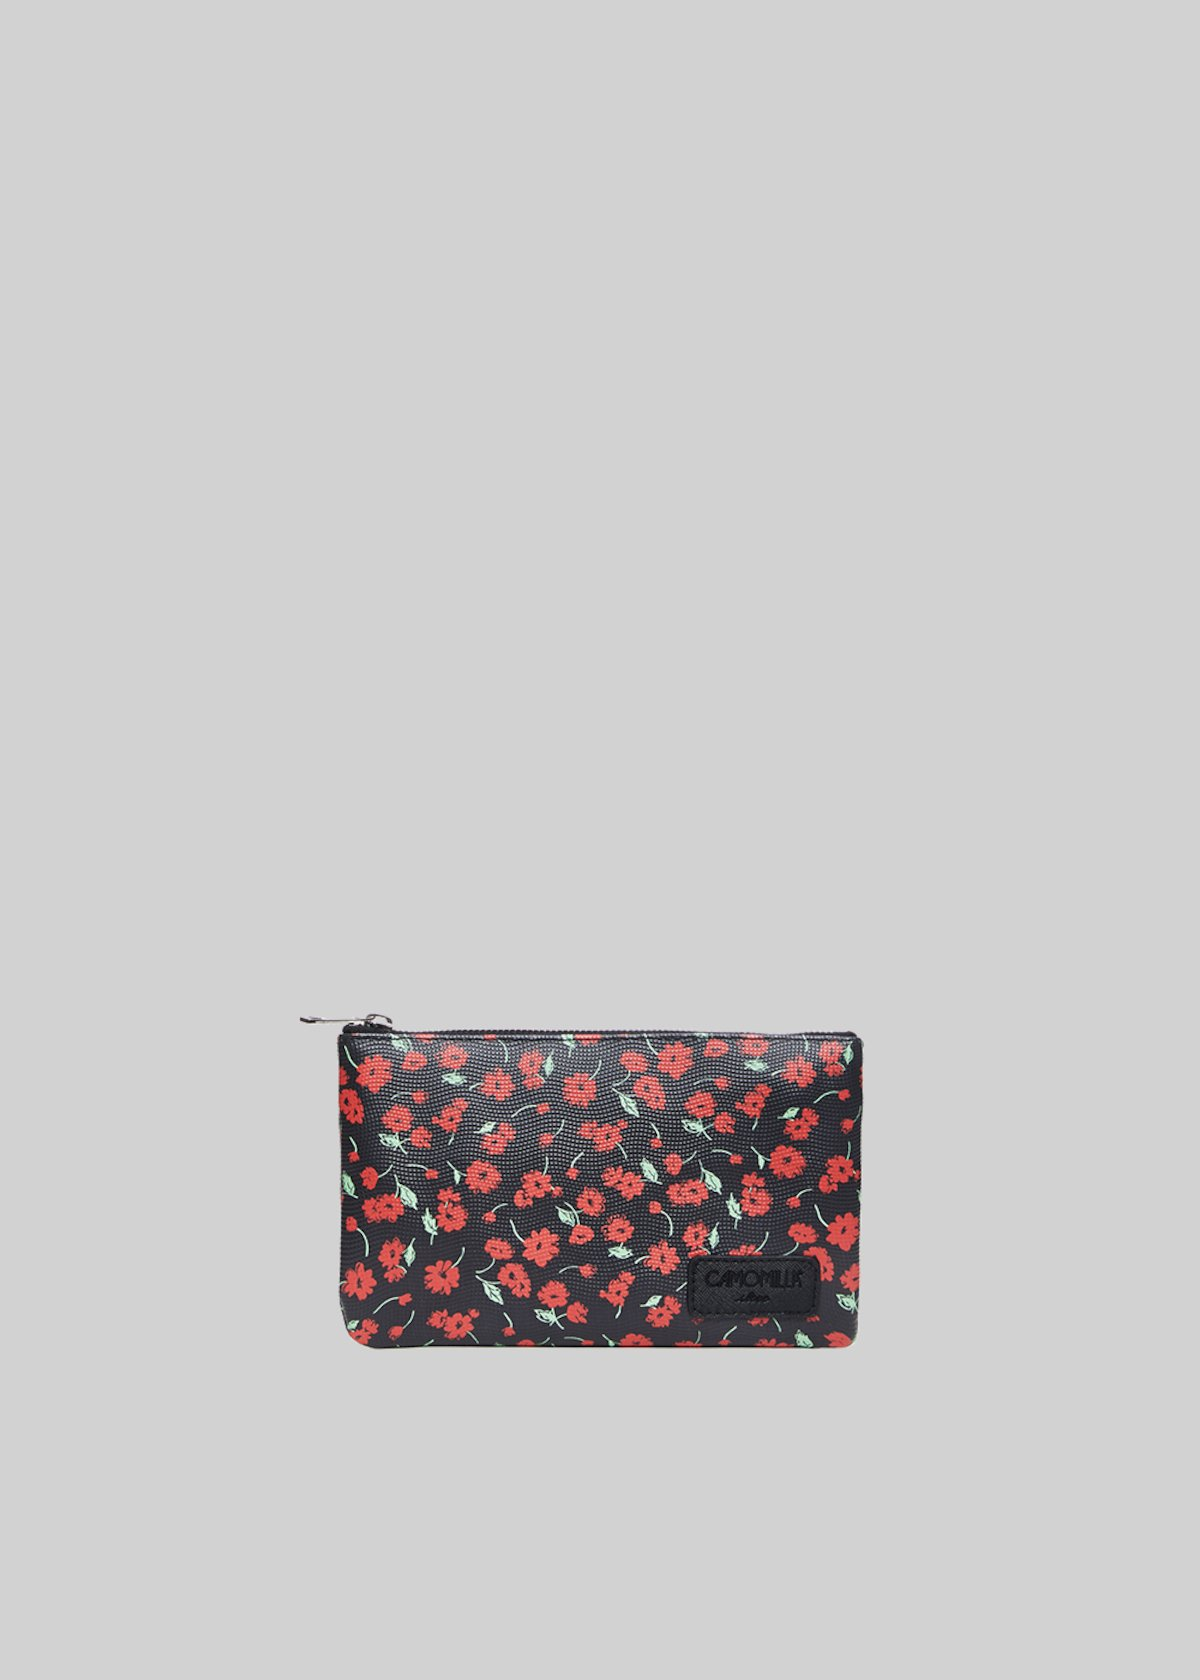 Tongaflo2 clutch bag in faux leather flowers print - Black Fantasia